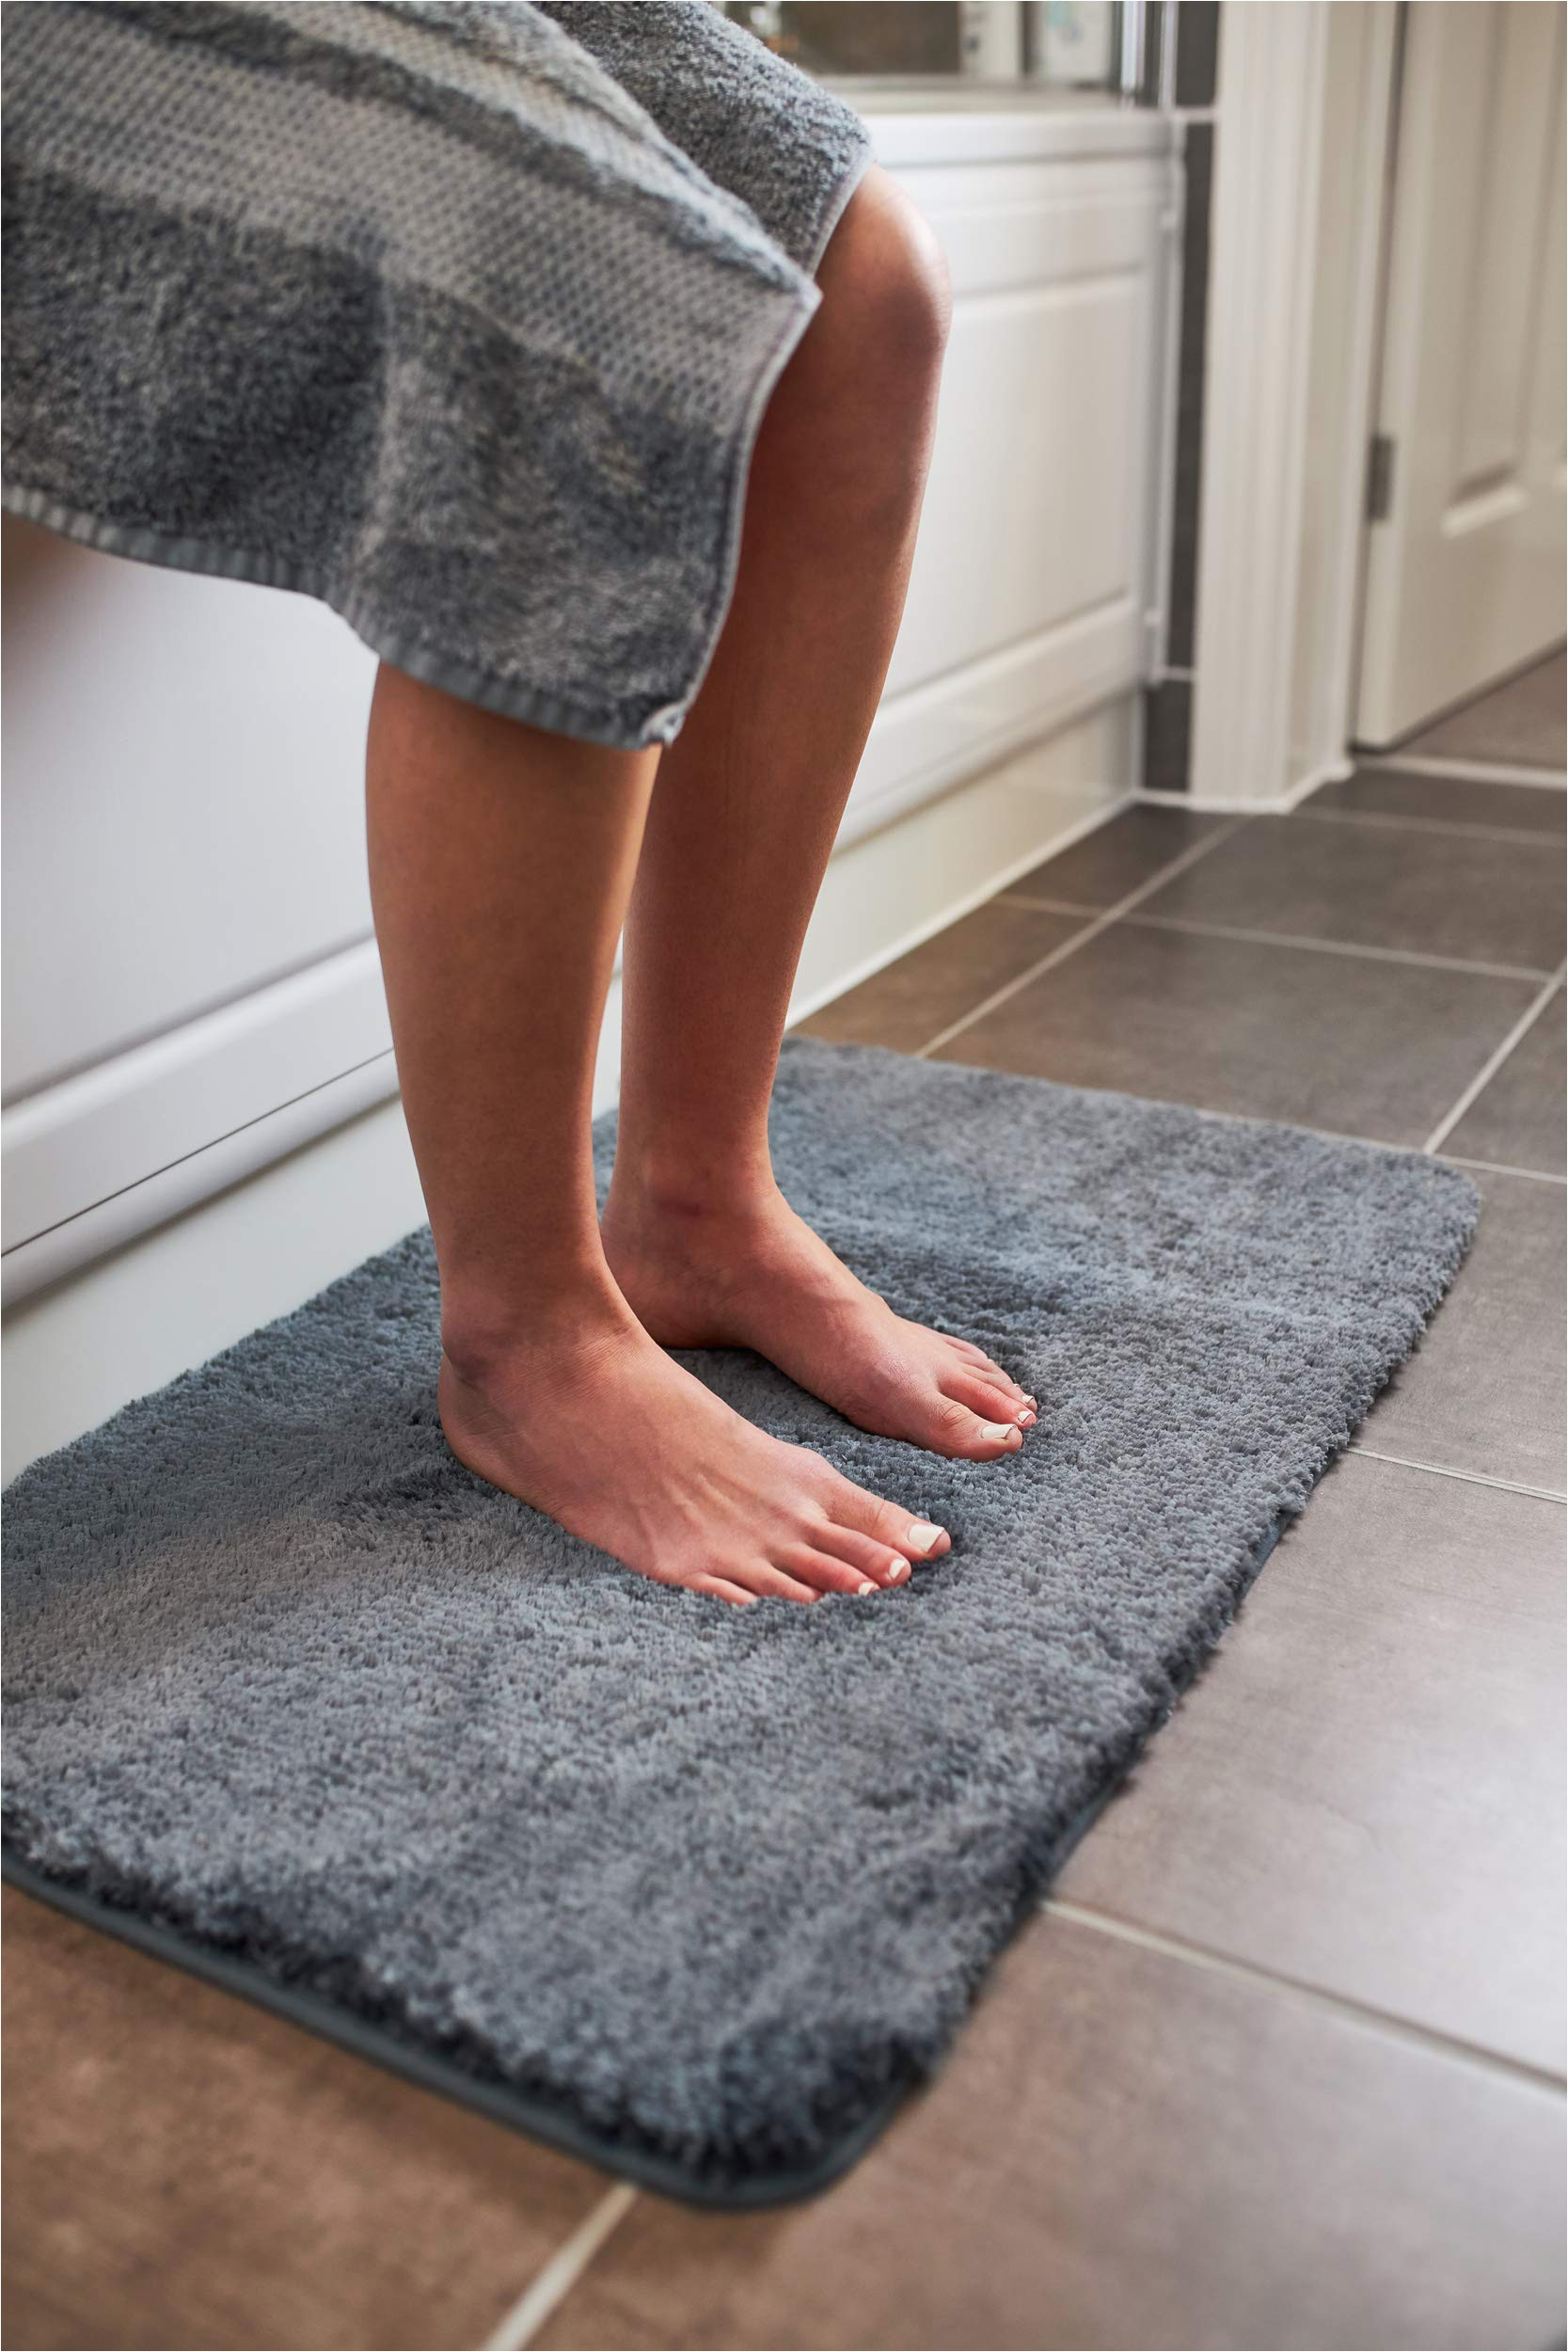 Bath Rugs without Rubber Backing Luxury Grey Bath Mat Microfiber Non Slip Bath Rug with Super soft Absorbent Dry Fast Design for Bath and Shower